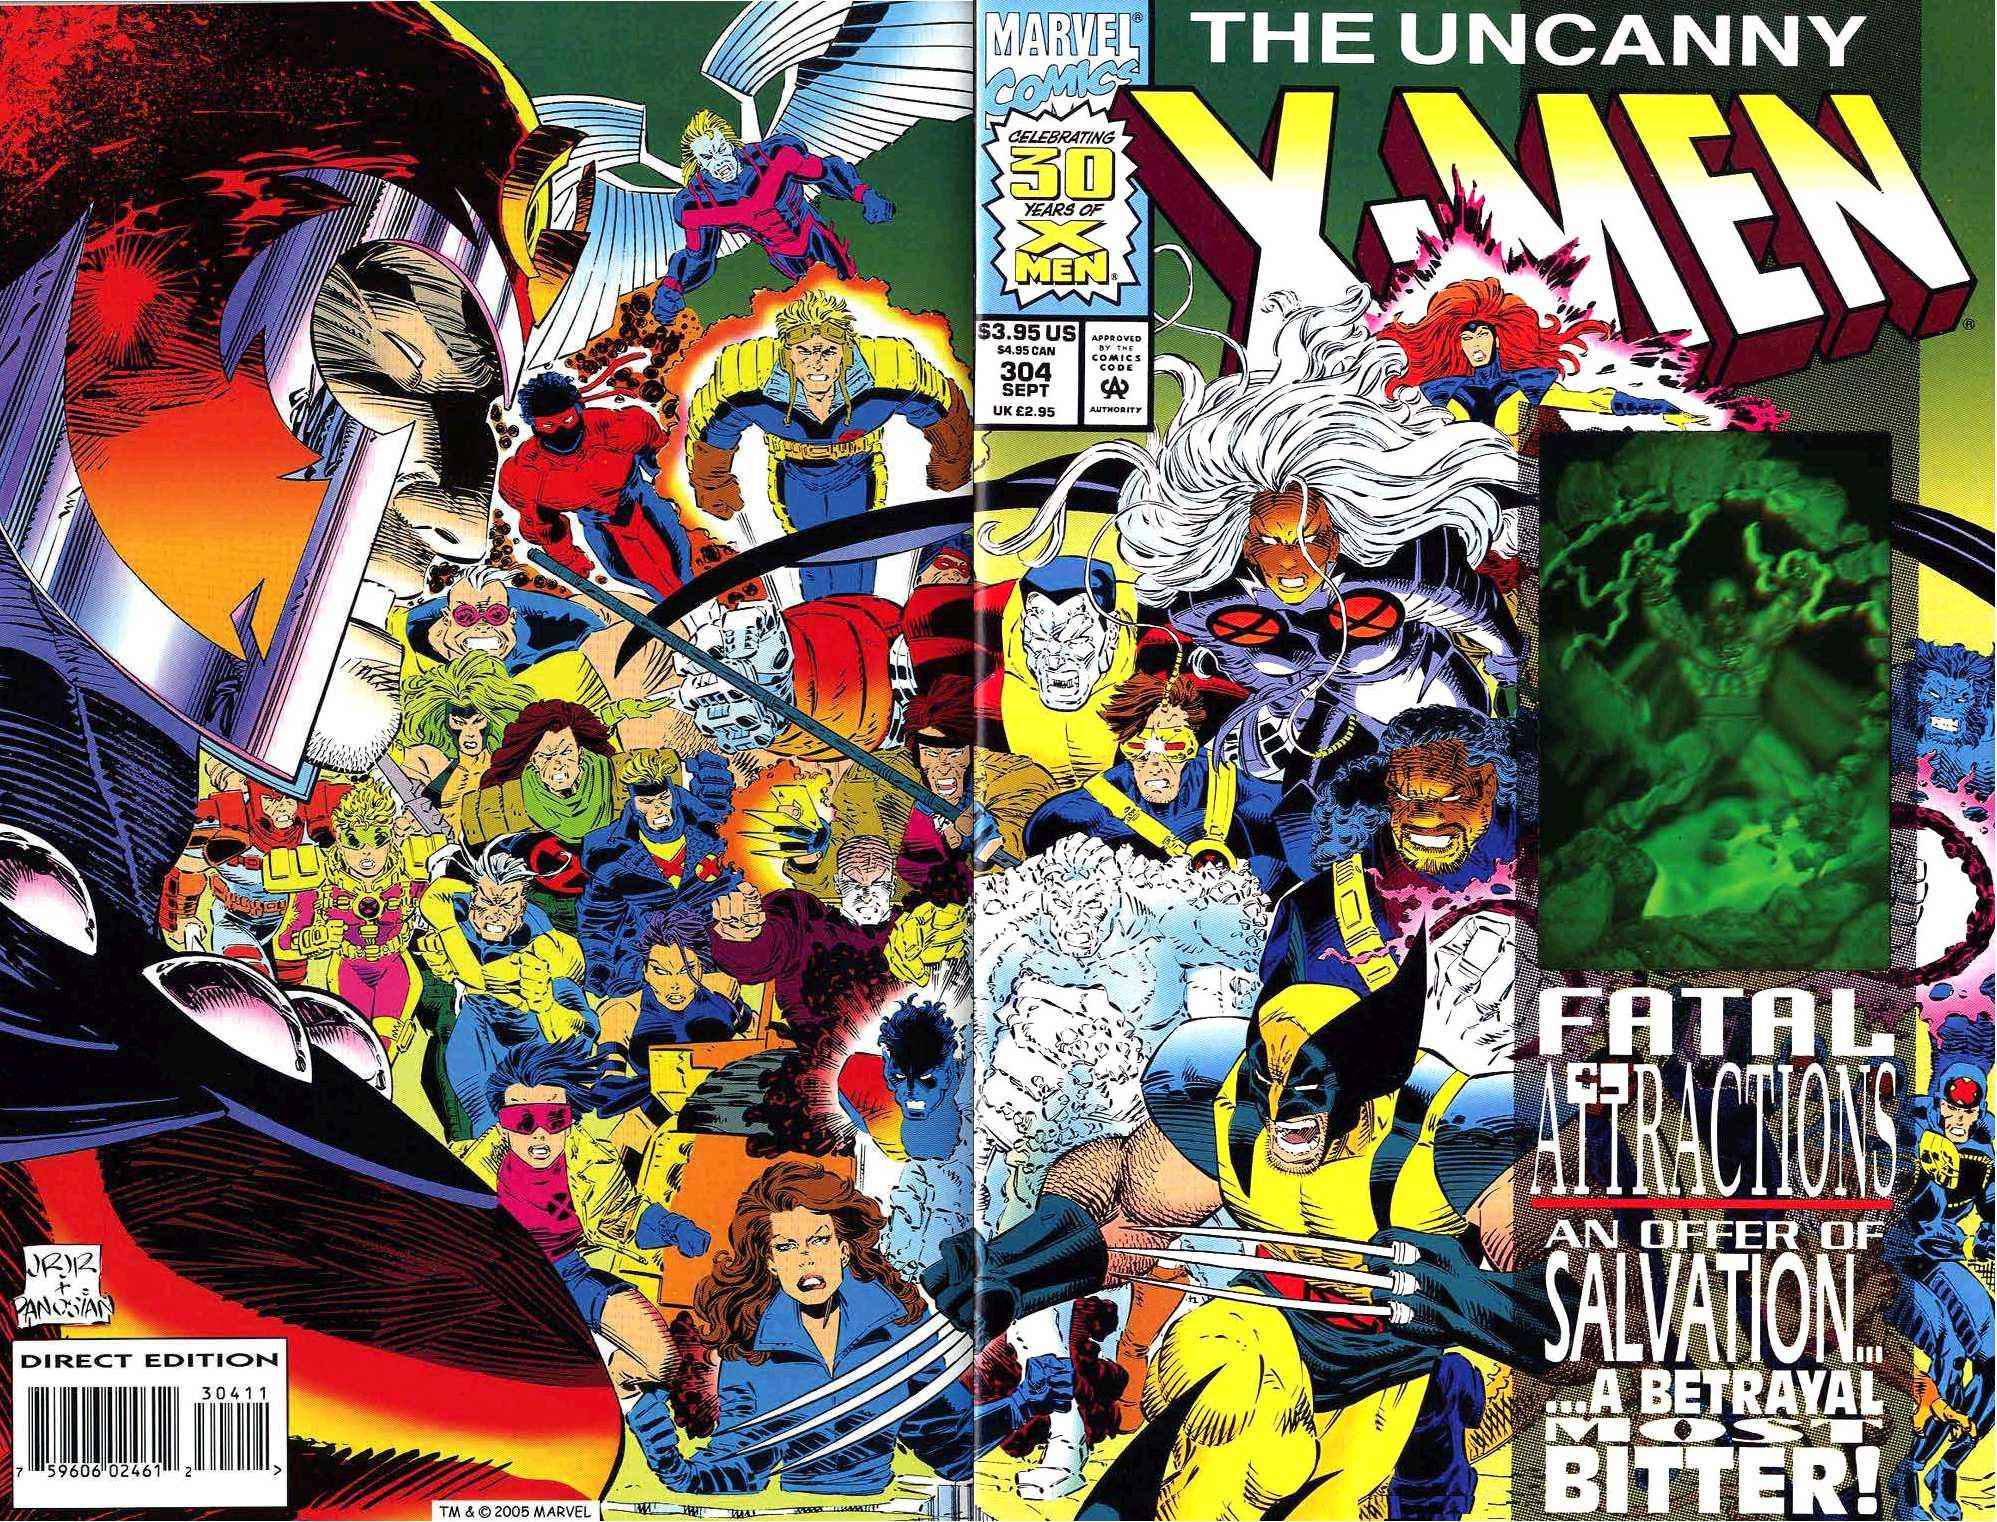 Uncanny X-Men Vol 1 304 Wraparound Cover.jpg